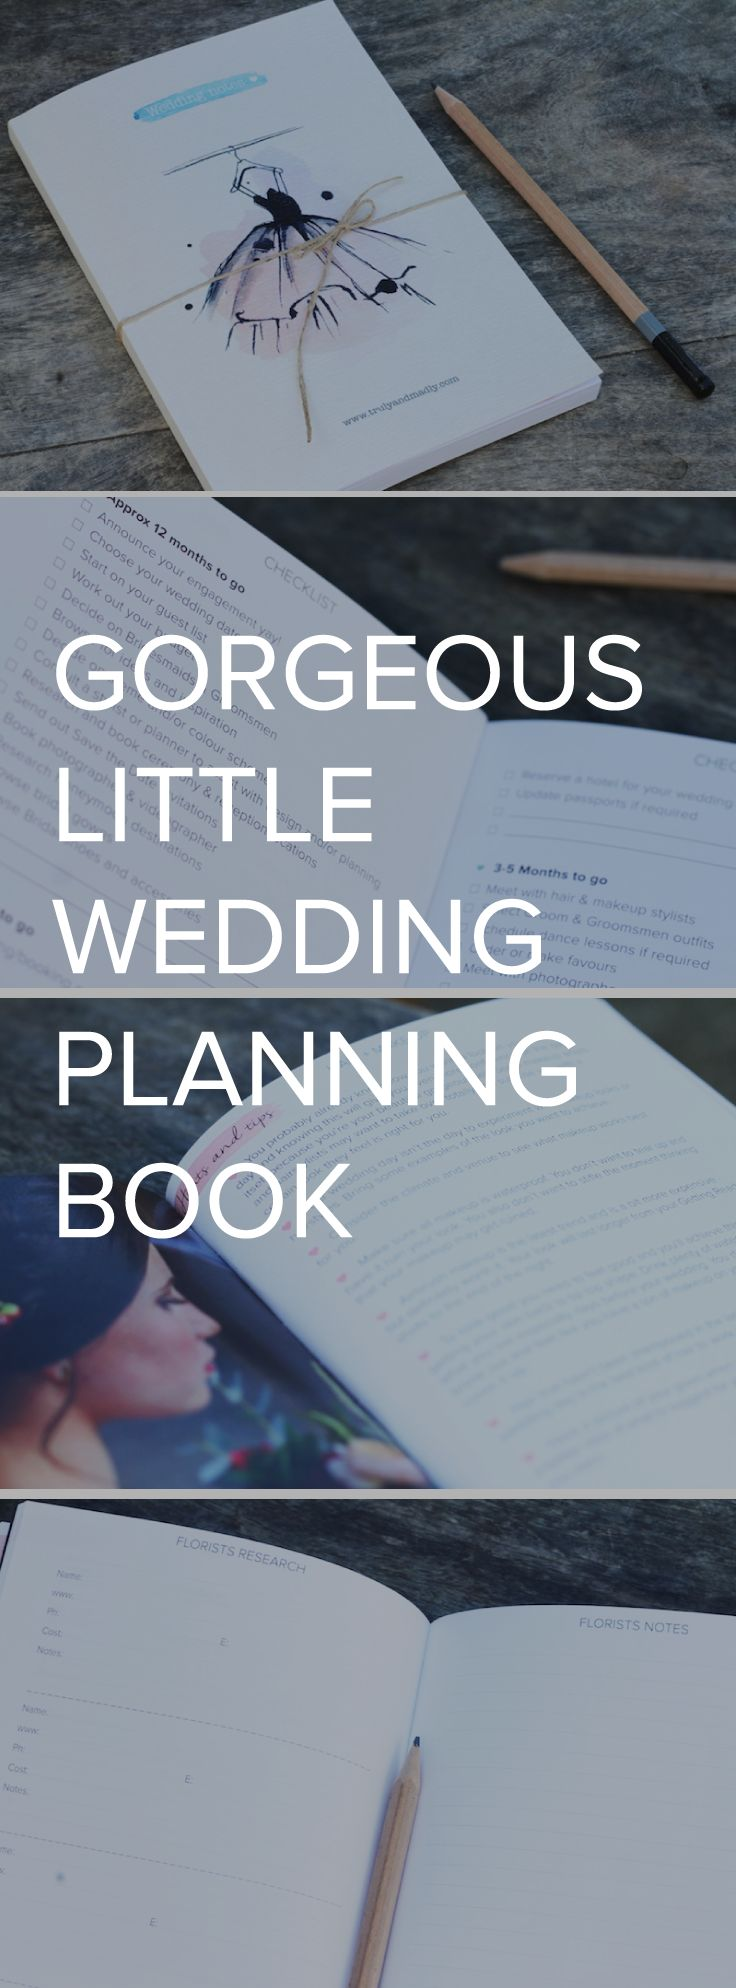 wedding planning checklist spreadsheet free%0A Our very own  Truly and Madly wedding planning notebook  It u    s